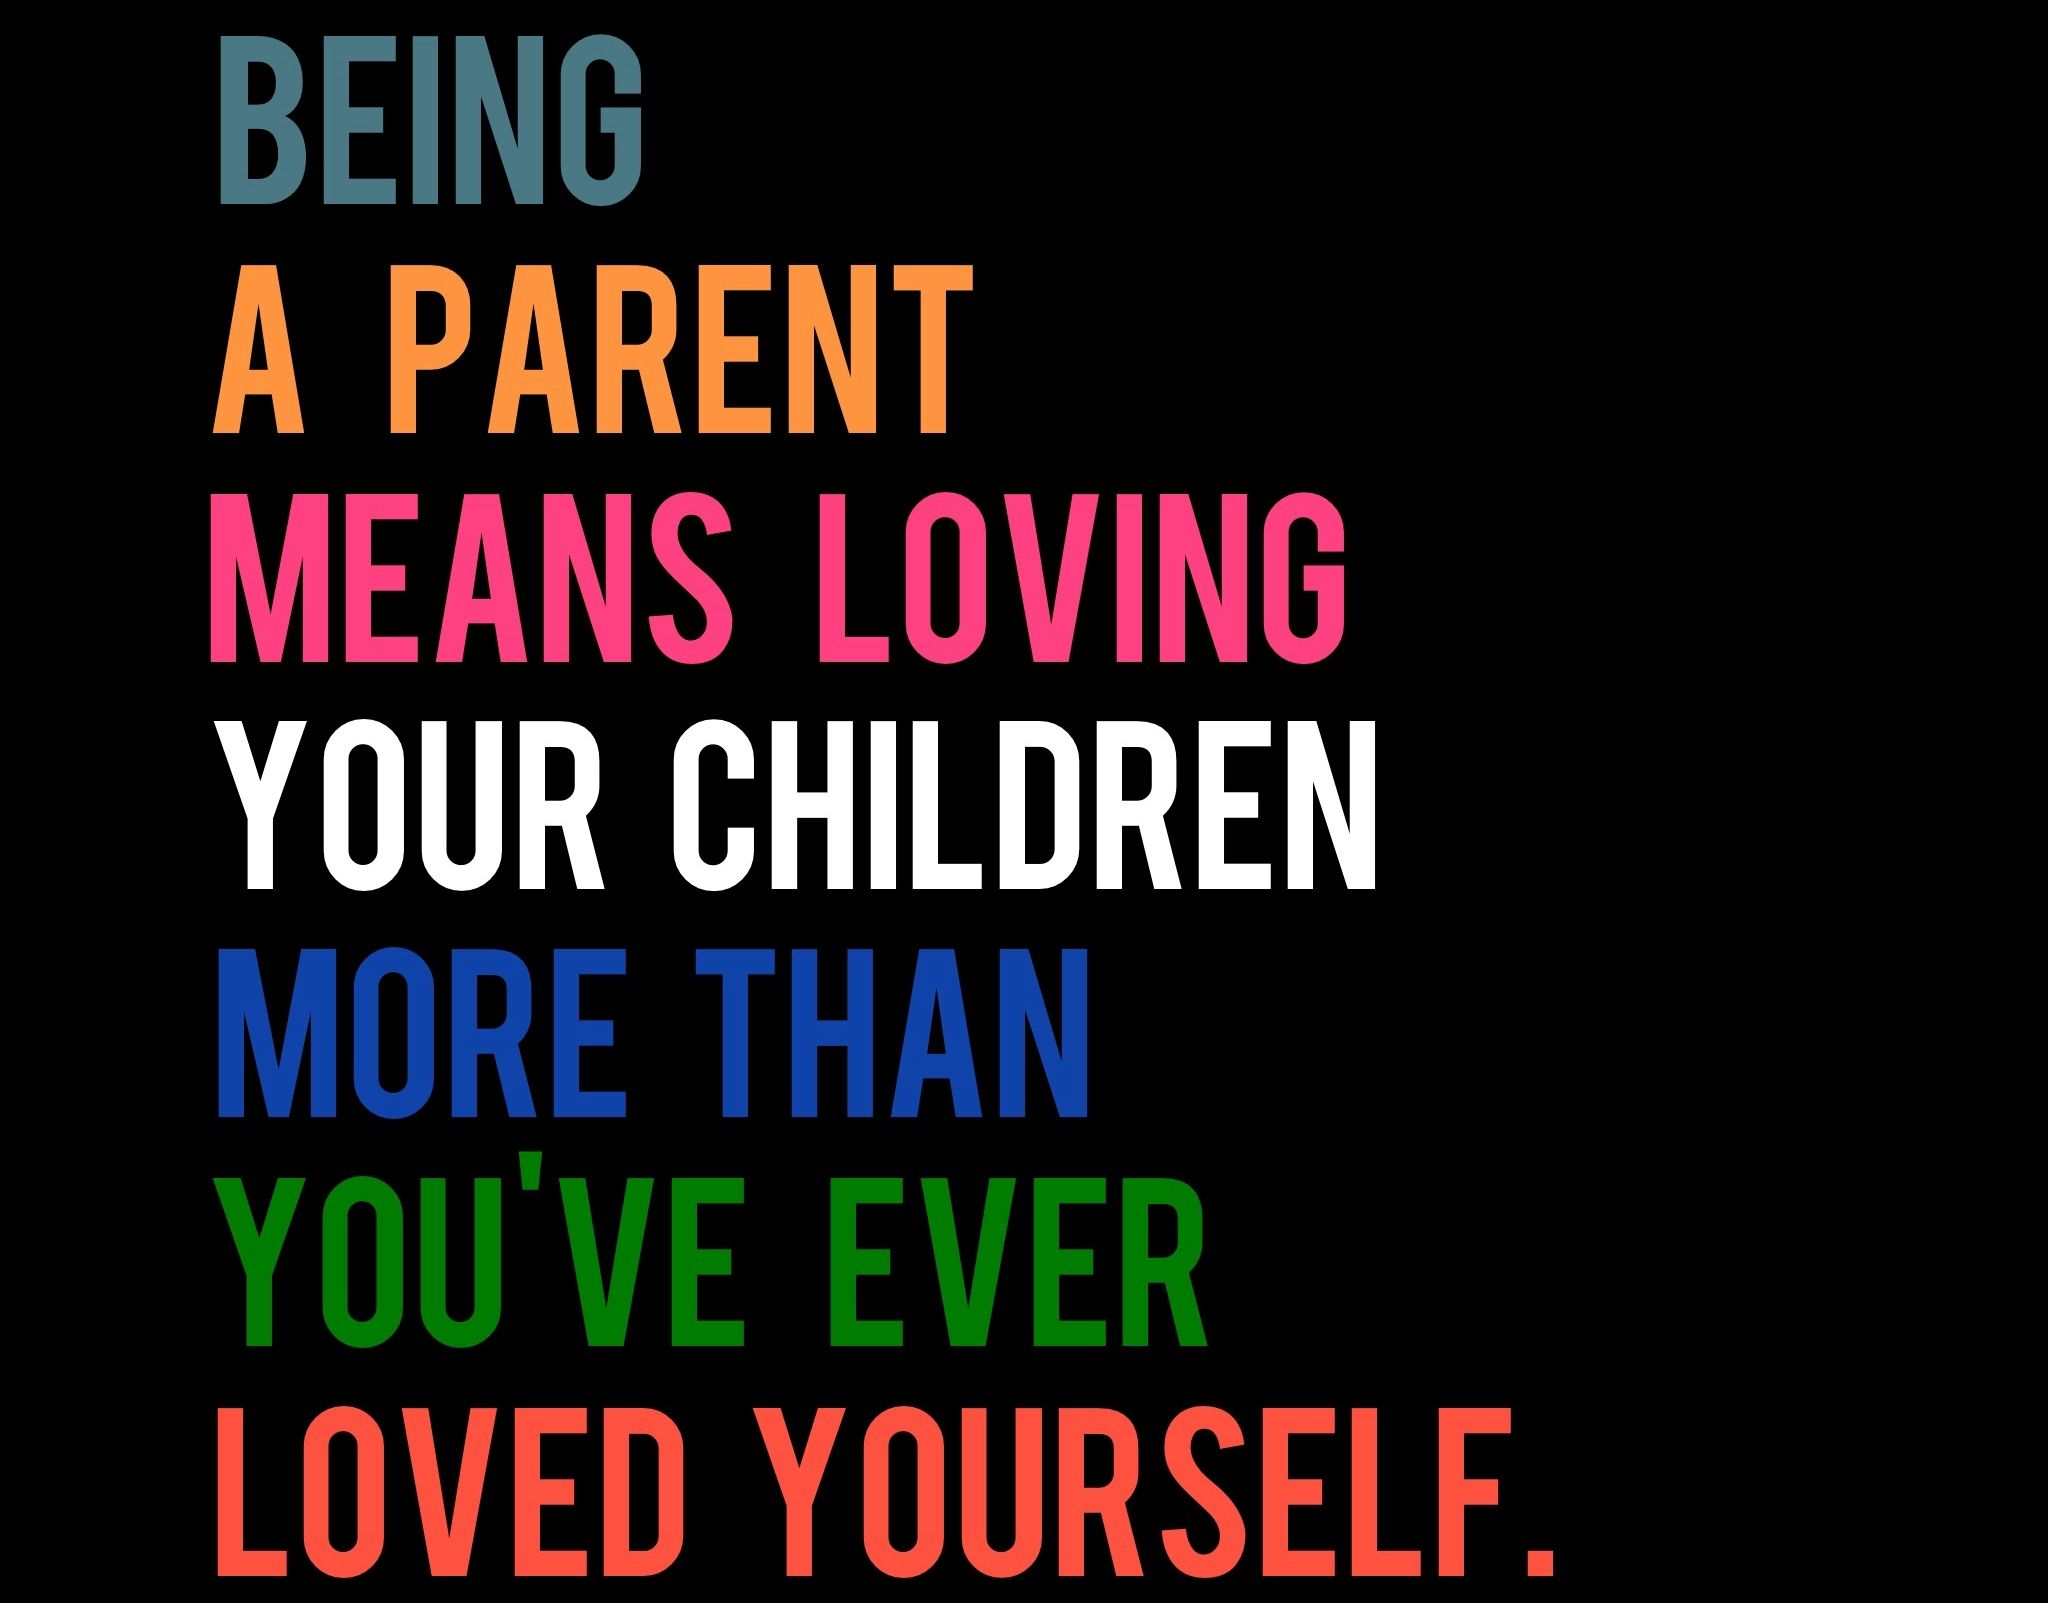 Love Your Kids Quotes Being A Parent Means Loving Your Children More Than You've Ever